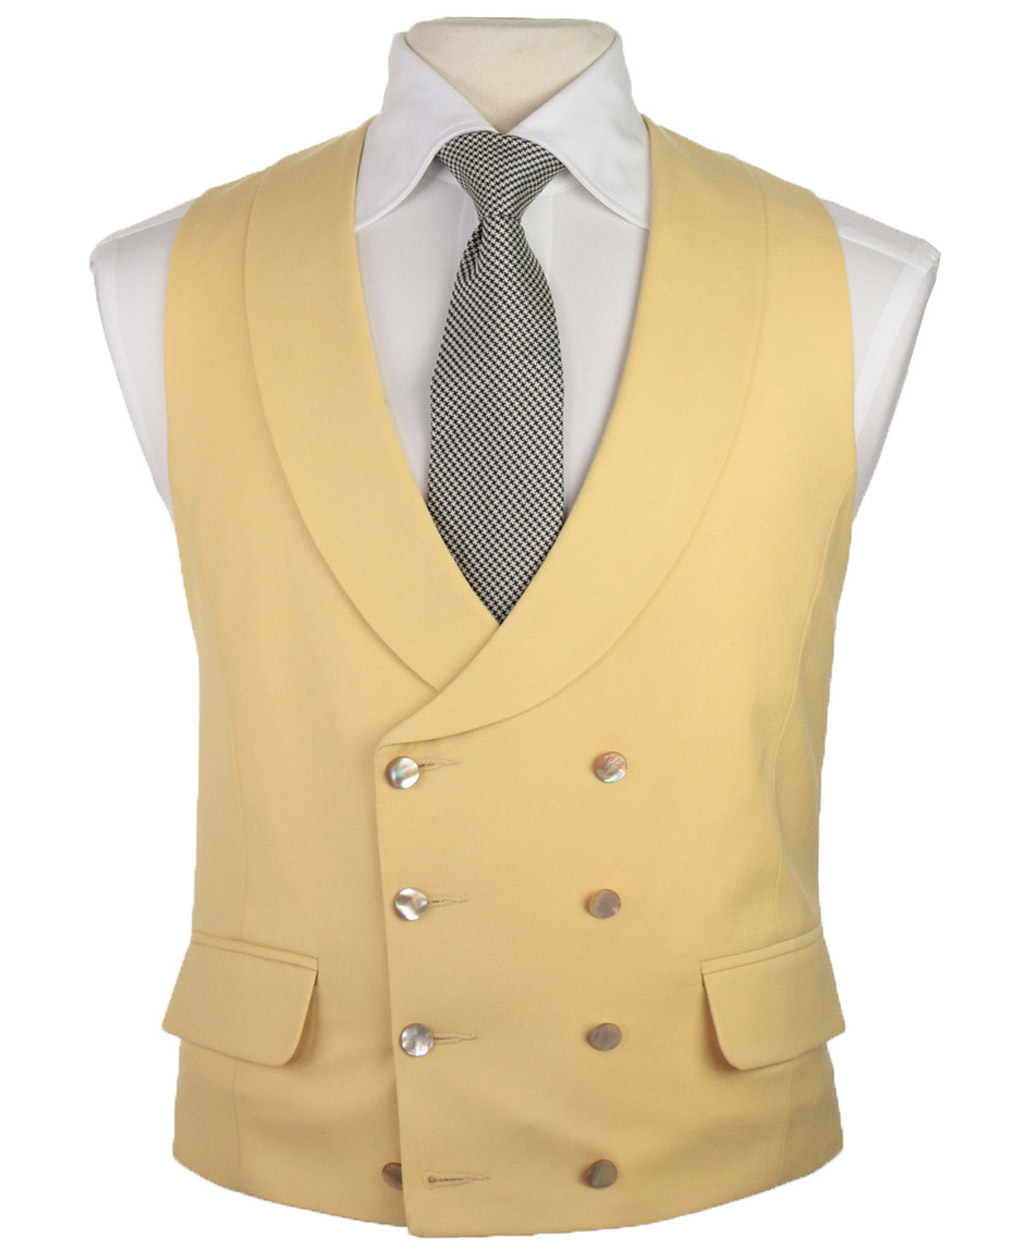 Double Breasted WaistCoats (Vest) | Louis tailor : New Look Collection ...